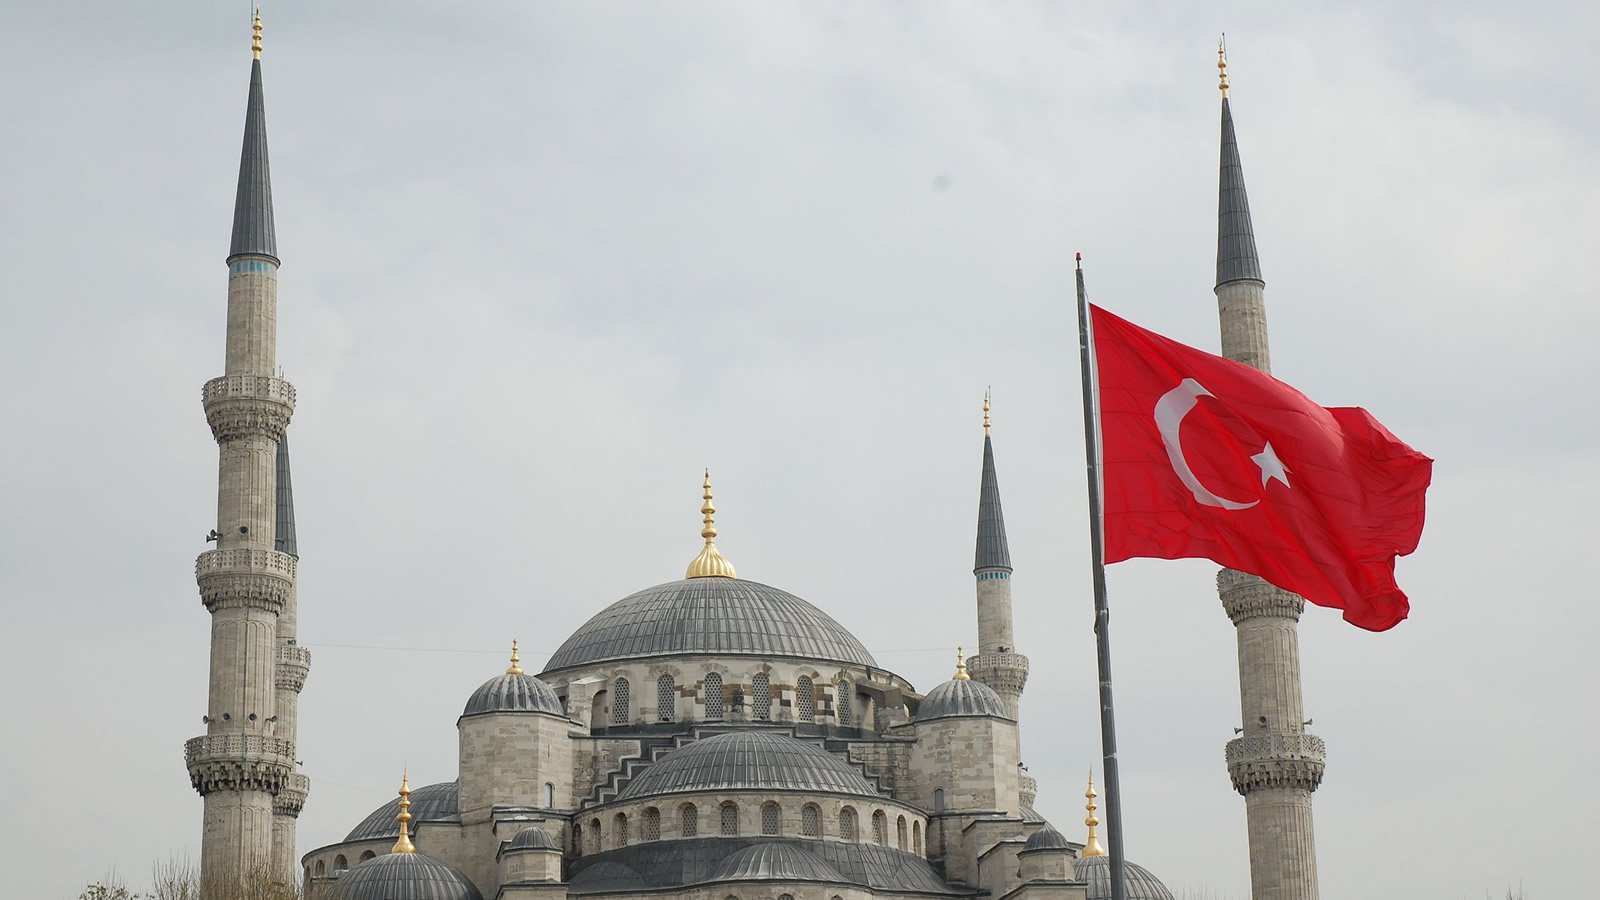 Turkish flag flies in front of the Blue Mosque in Istanbul, Turkey